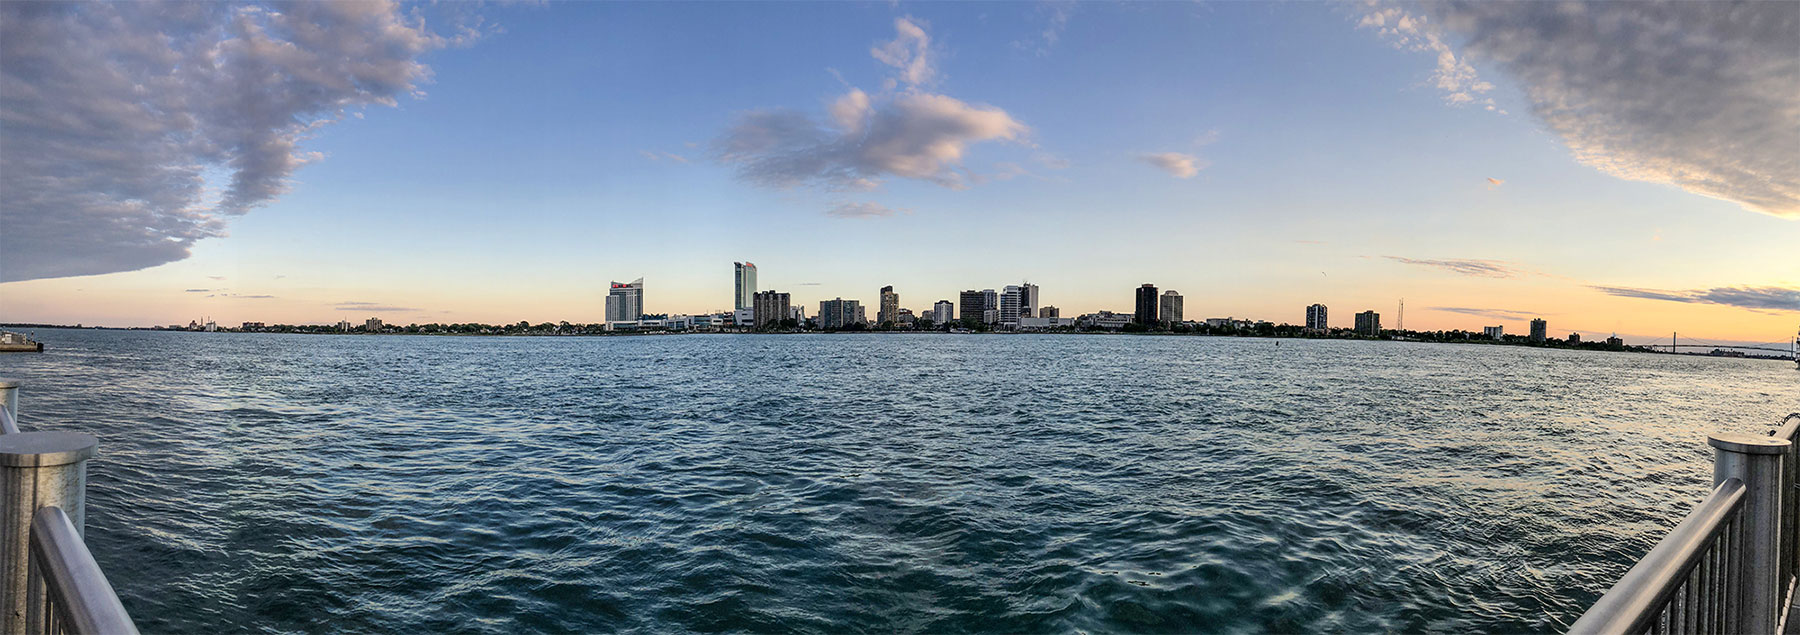 Panoramic of Detroit Riverfront at sunset